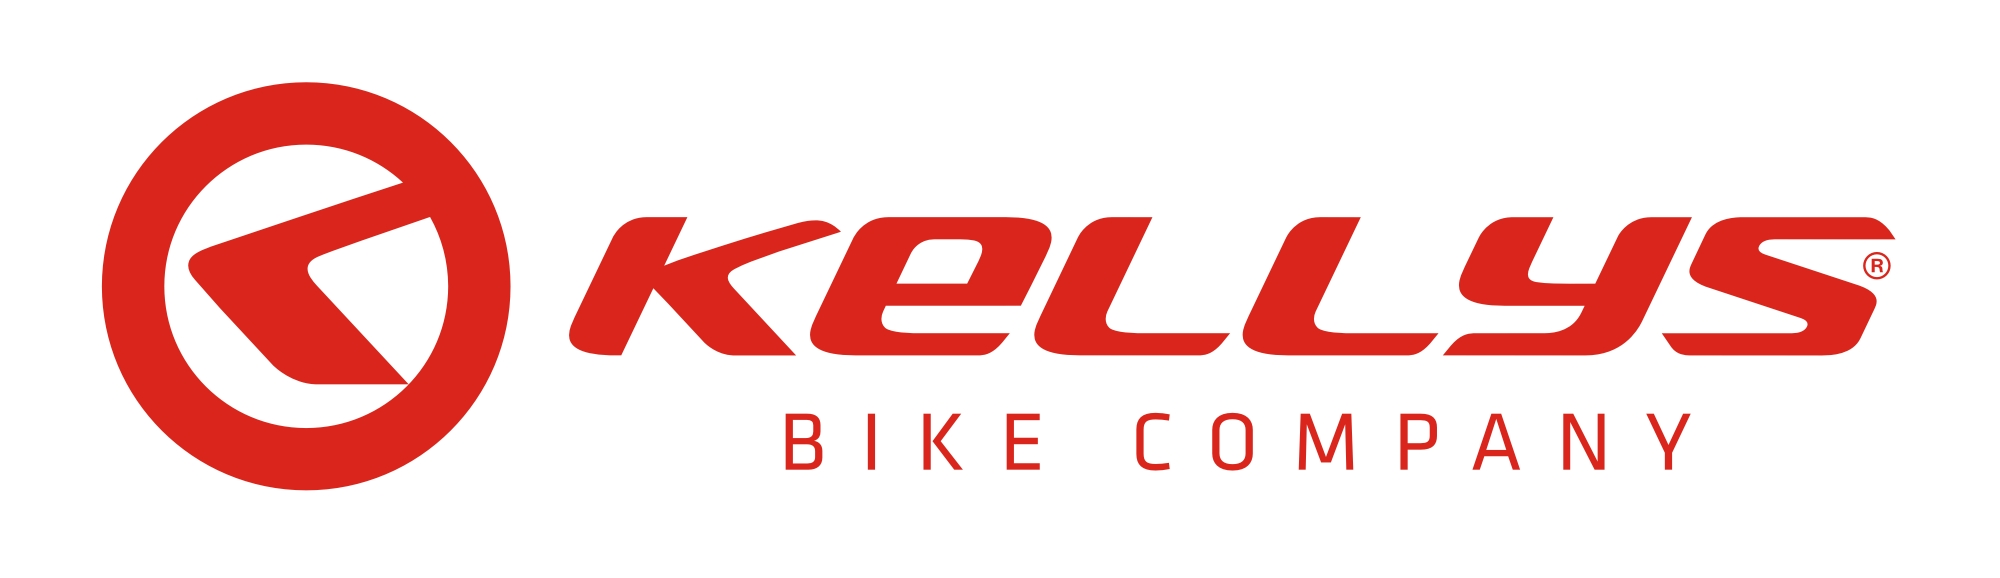 bike room kellys lublin